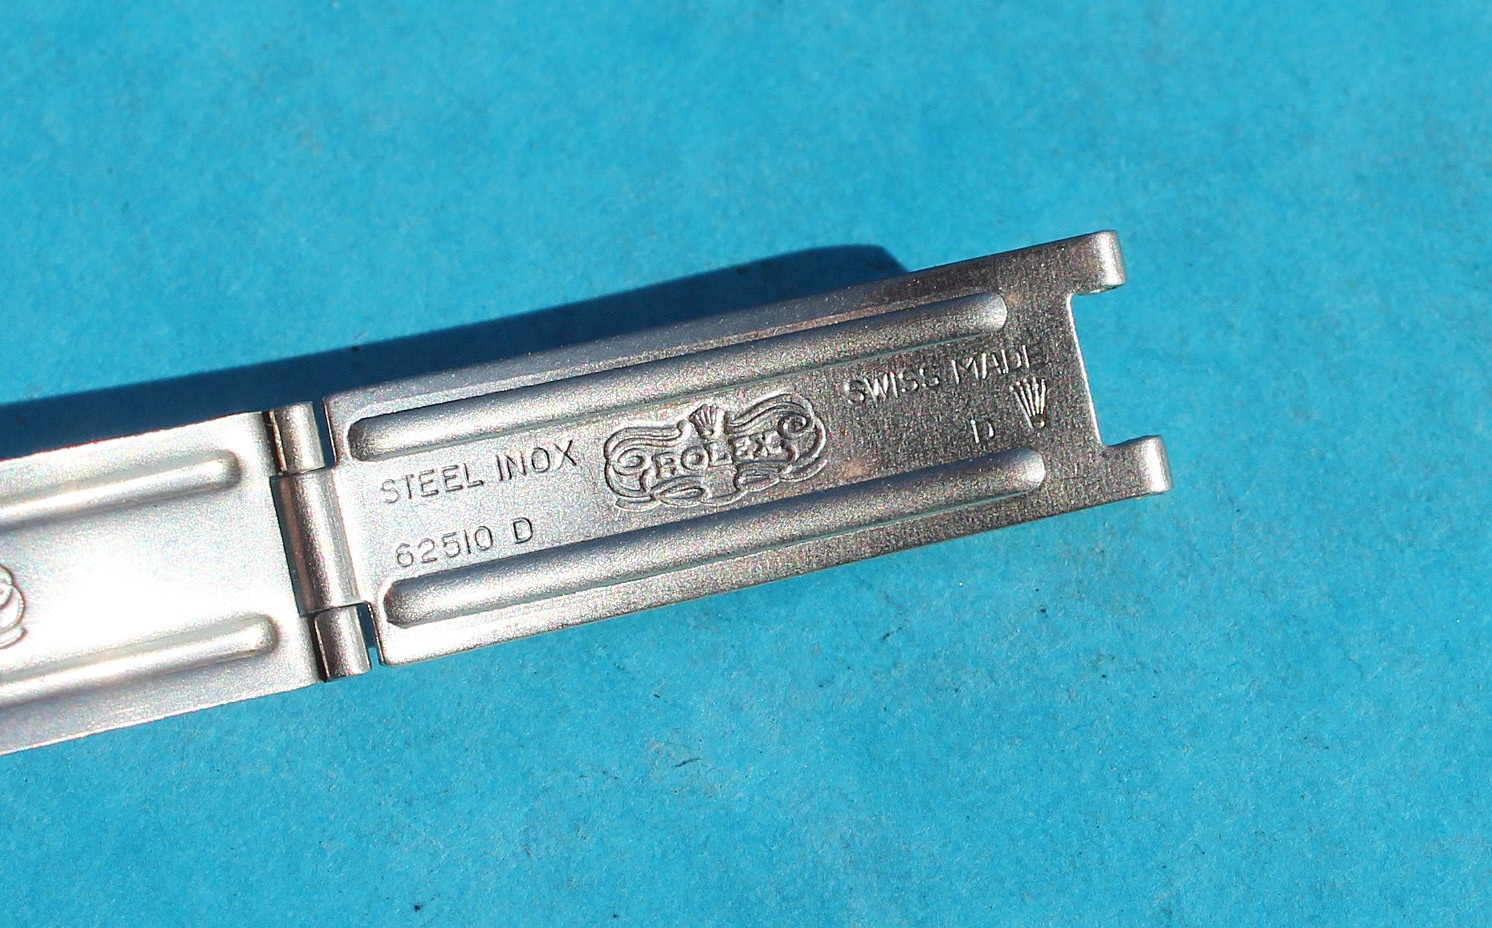 Genuine Ladies Rolex Datejust watches Shield center Clasp 11mm for a 13mm Bracelet, Stainless Steel ref 62523D, 7834, 6251D